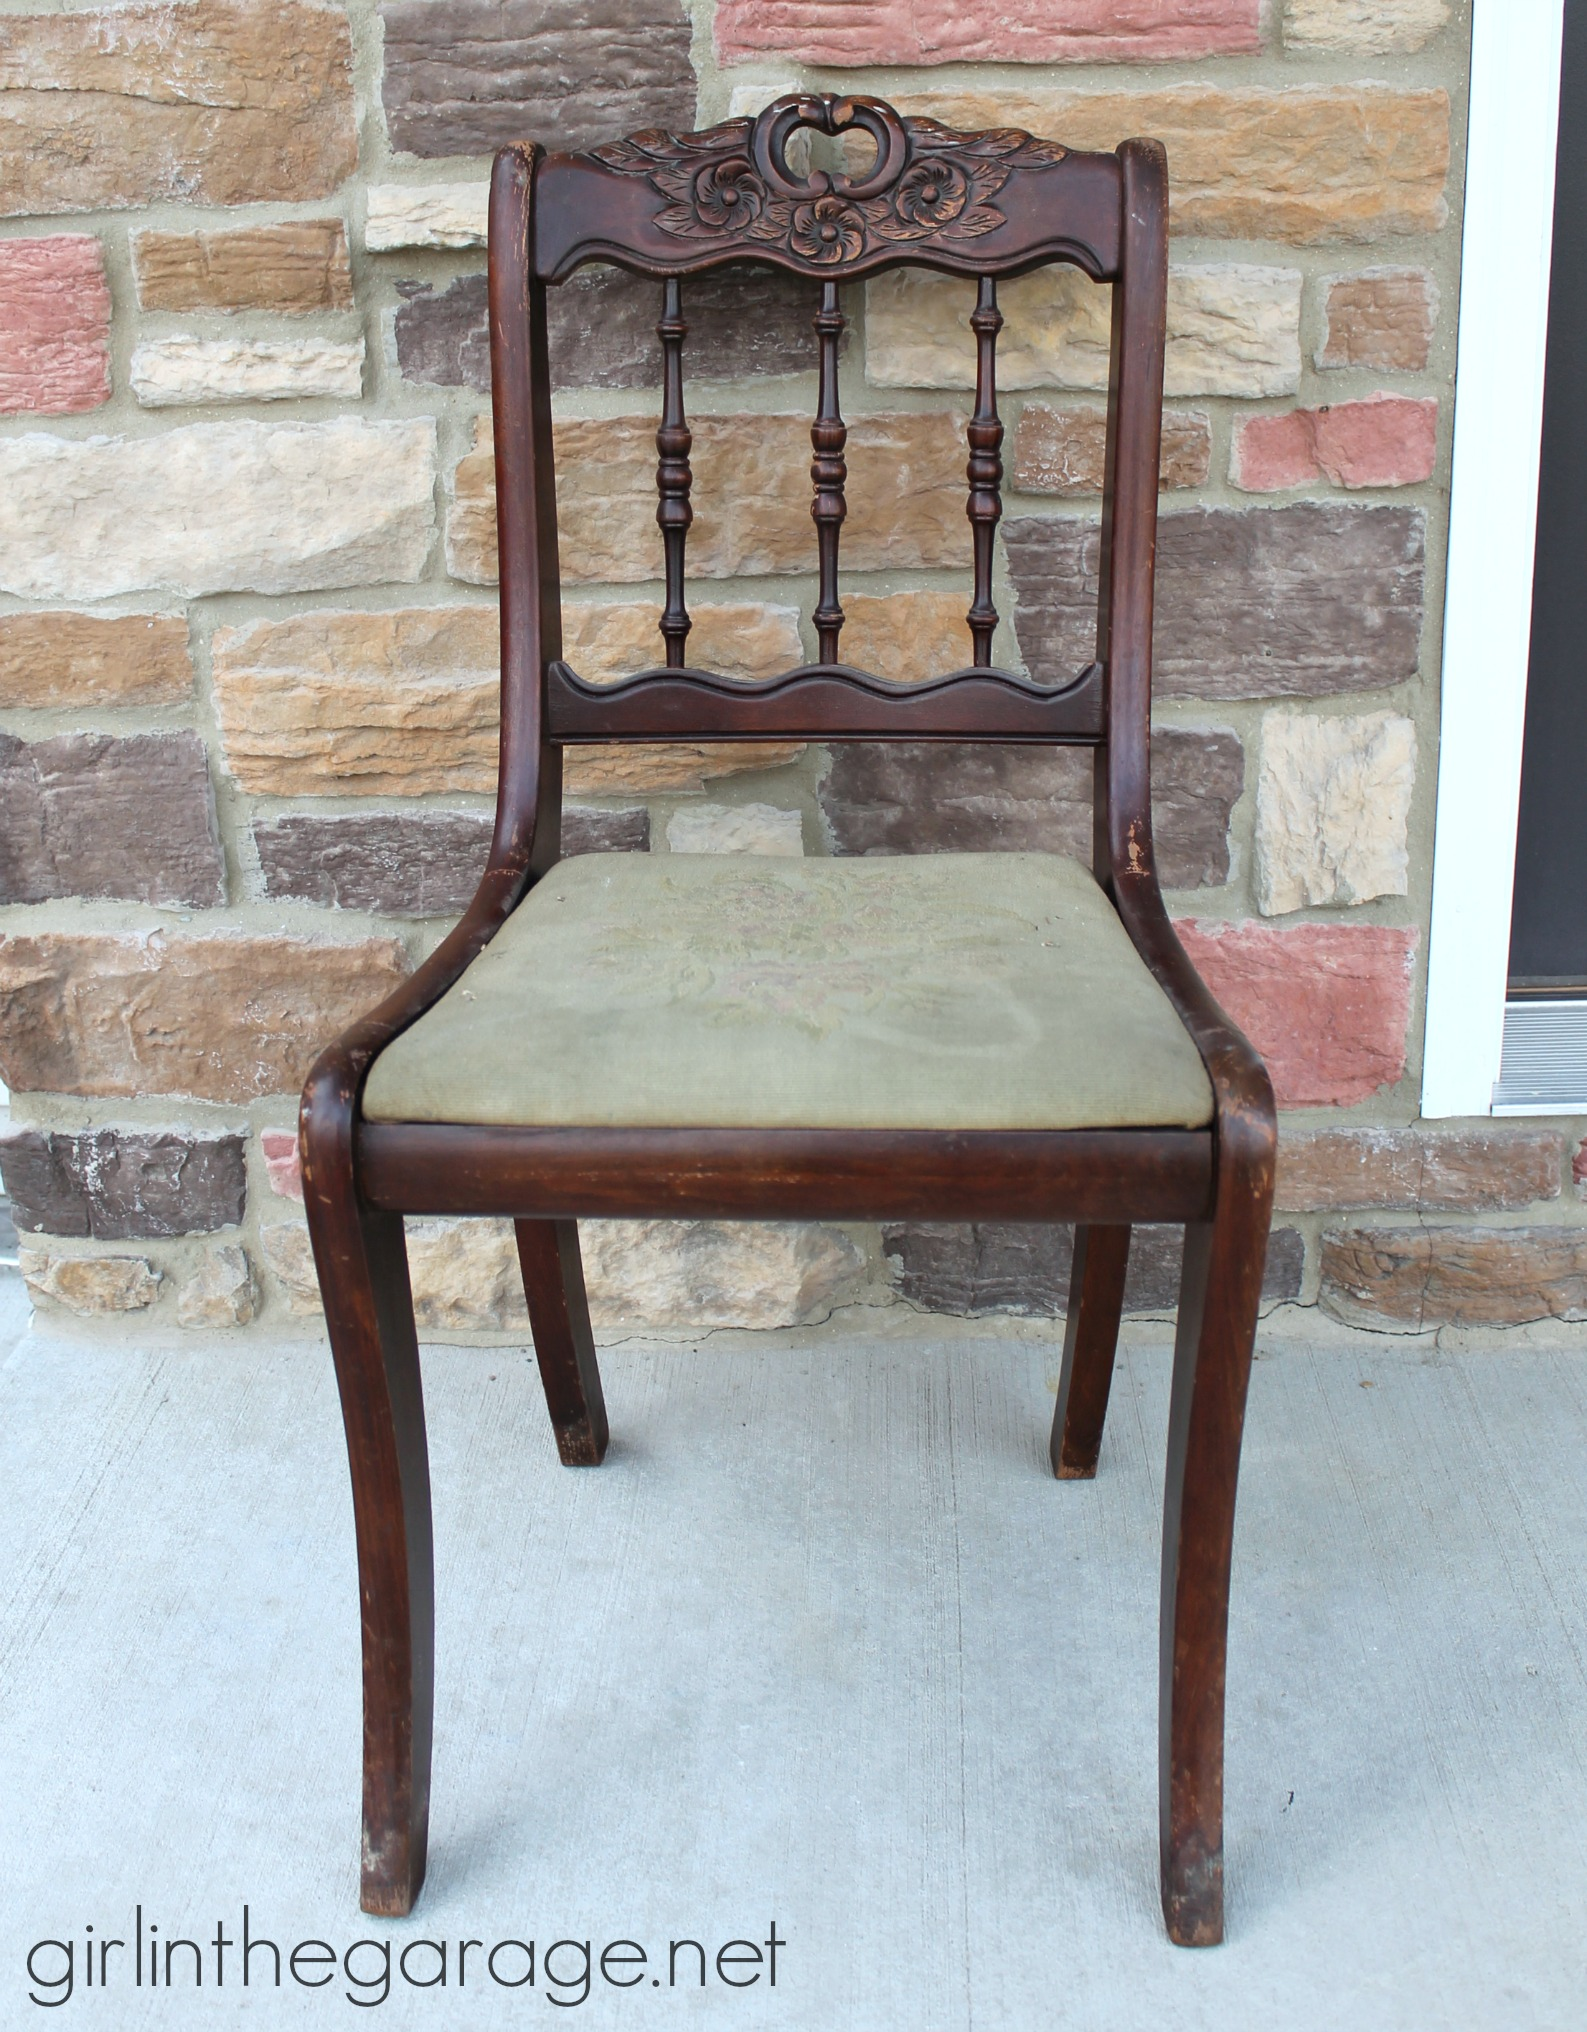 IMG_3345 Antique Wooden Chair